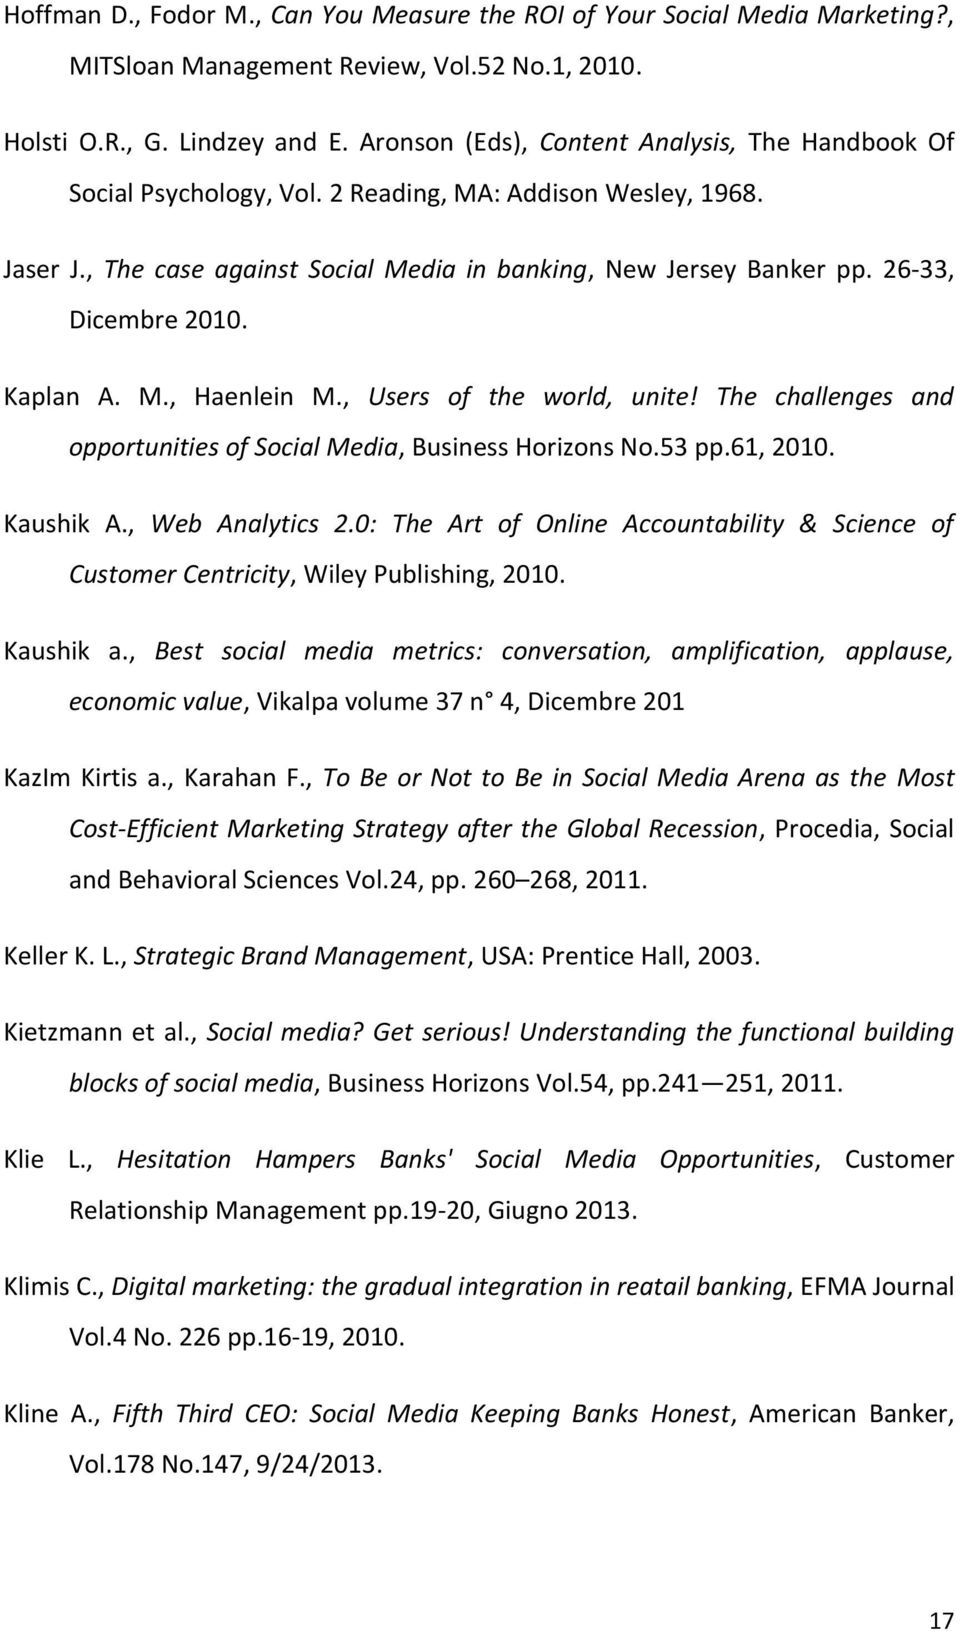 26-33, Dicembre 2010. Kaplan A. M., Haenlein M., Users of the world, unite! The challenges and opportunities of Social Media, Business Horizons No.53 pp.61, 2010. Kaushik A., Web Analytics 2.